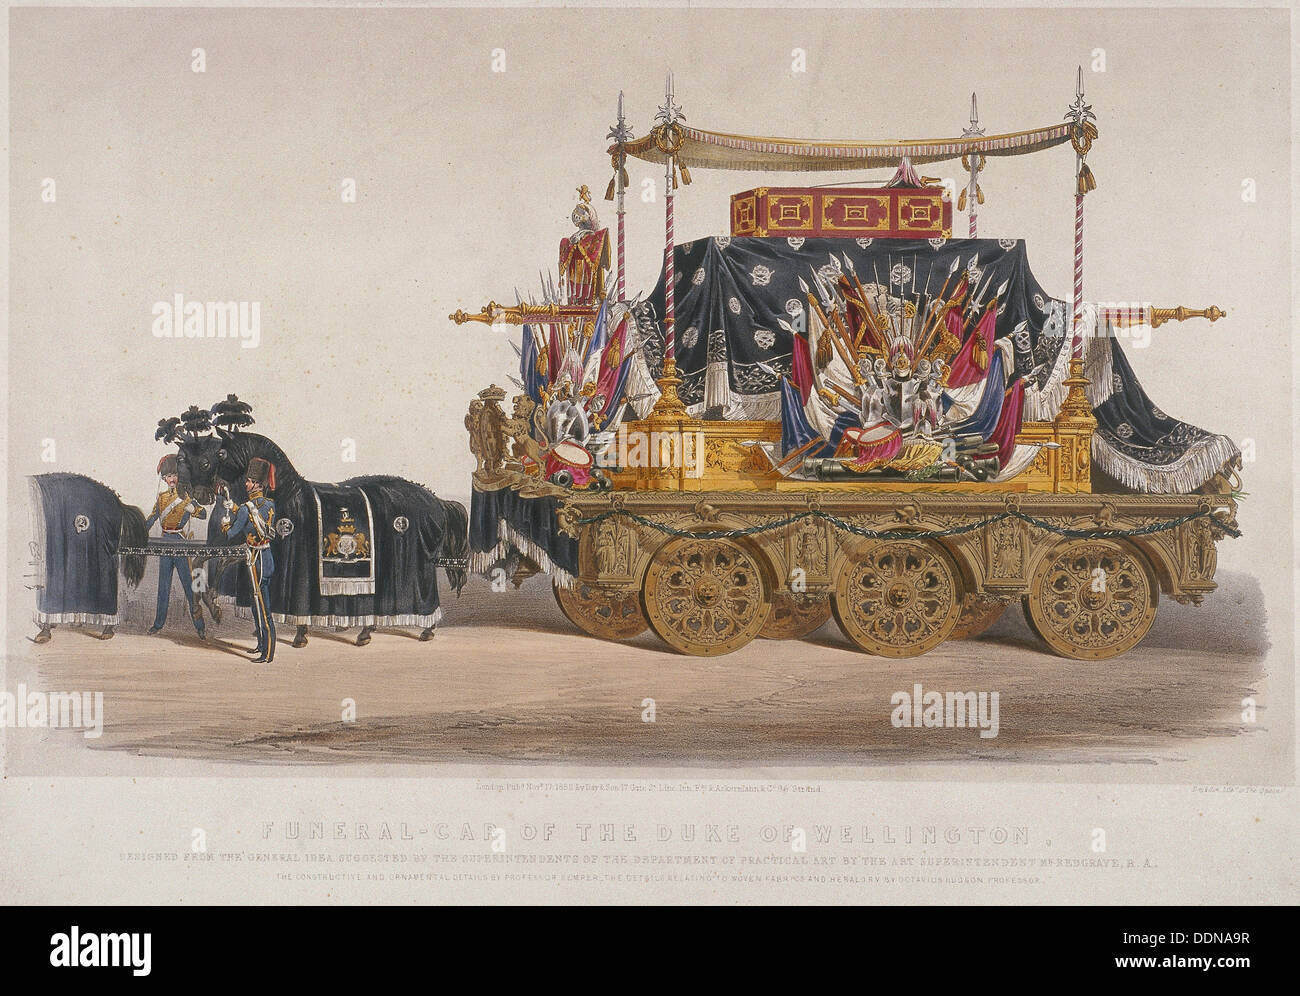 View of the funeral car of the Duke of Wellington, 1852. Artist: Richard Redgrave - Stock Image